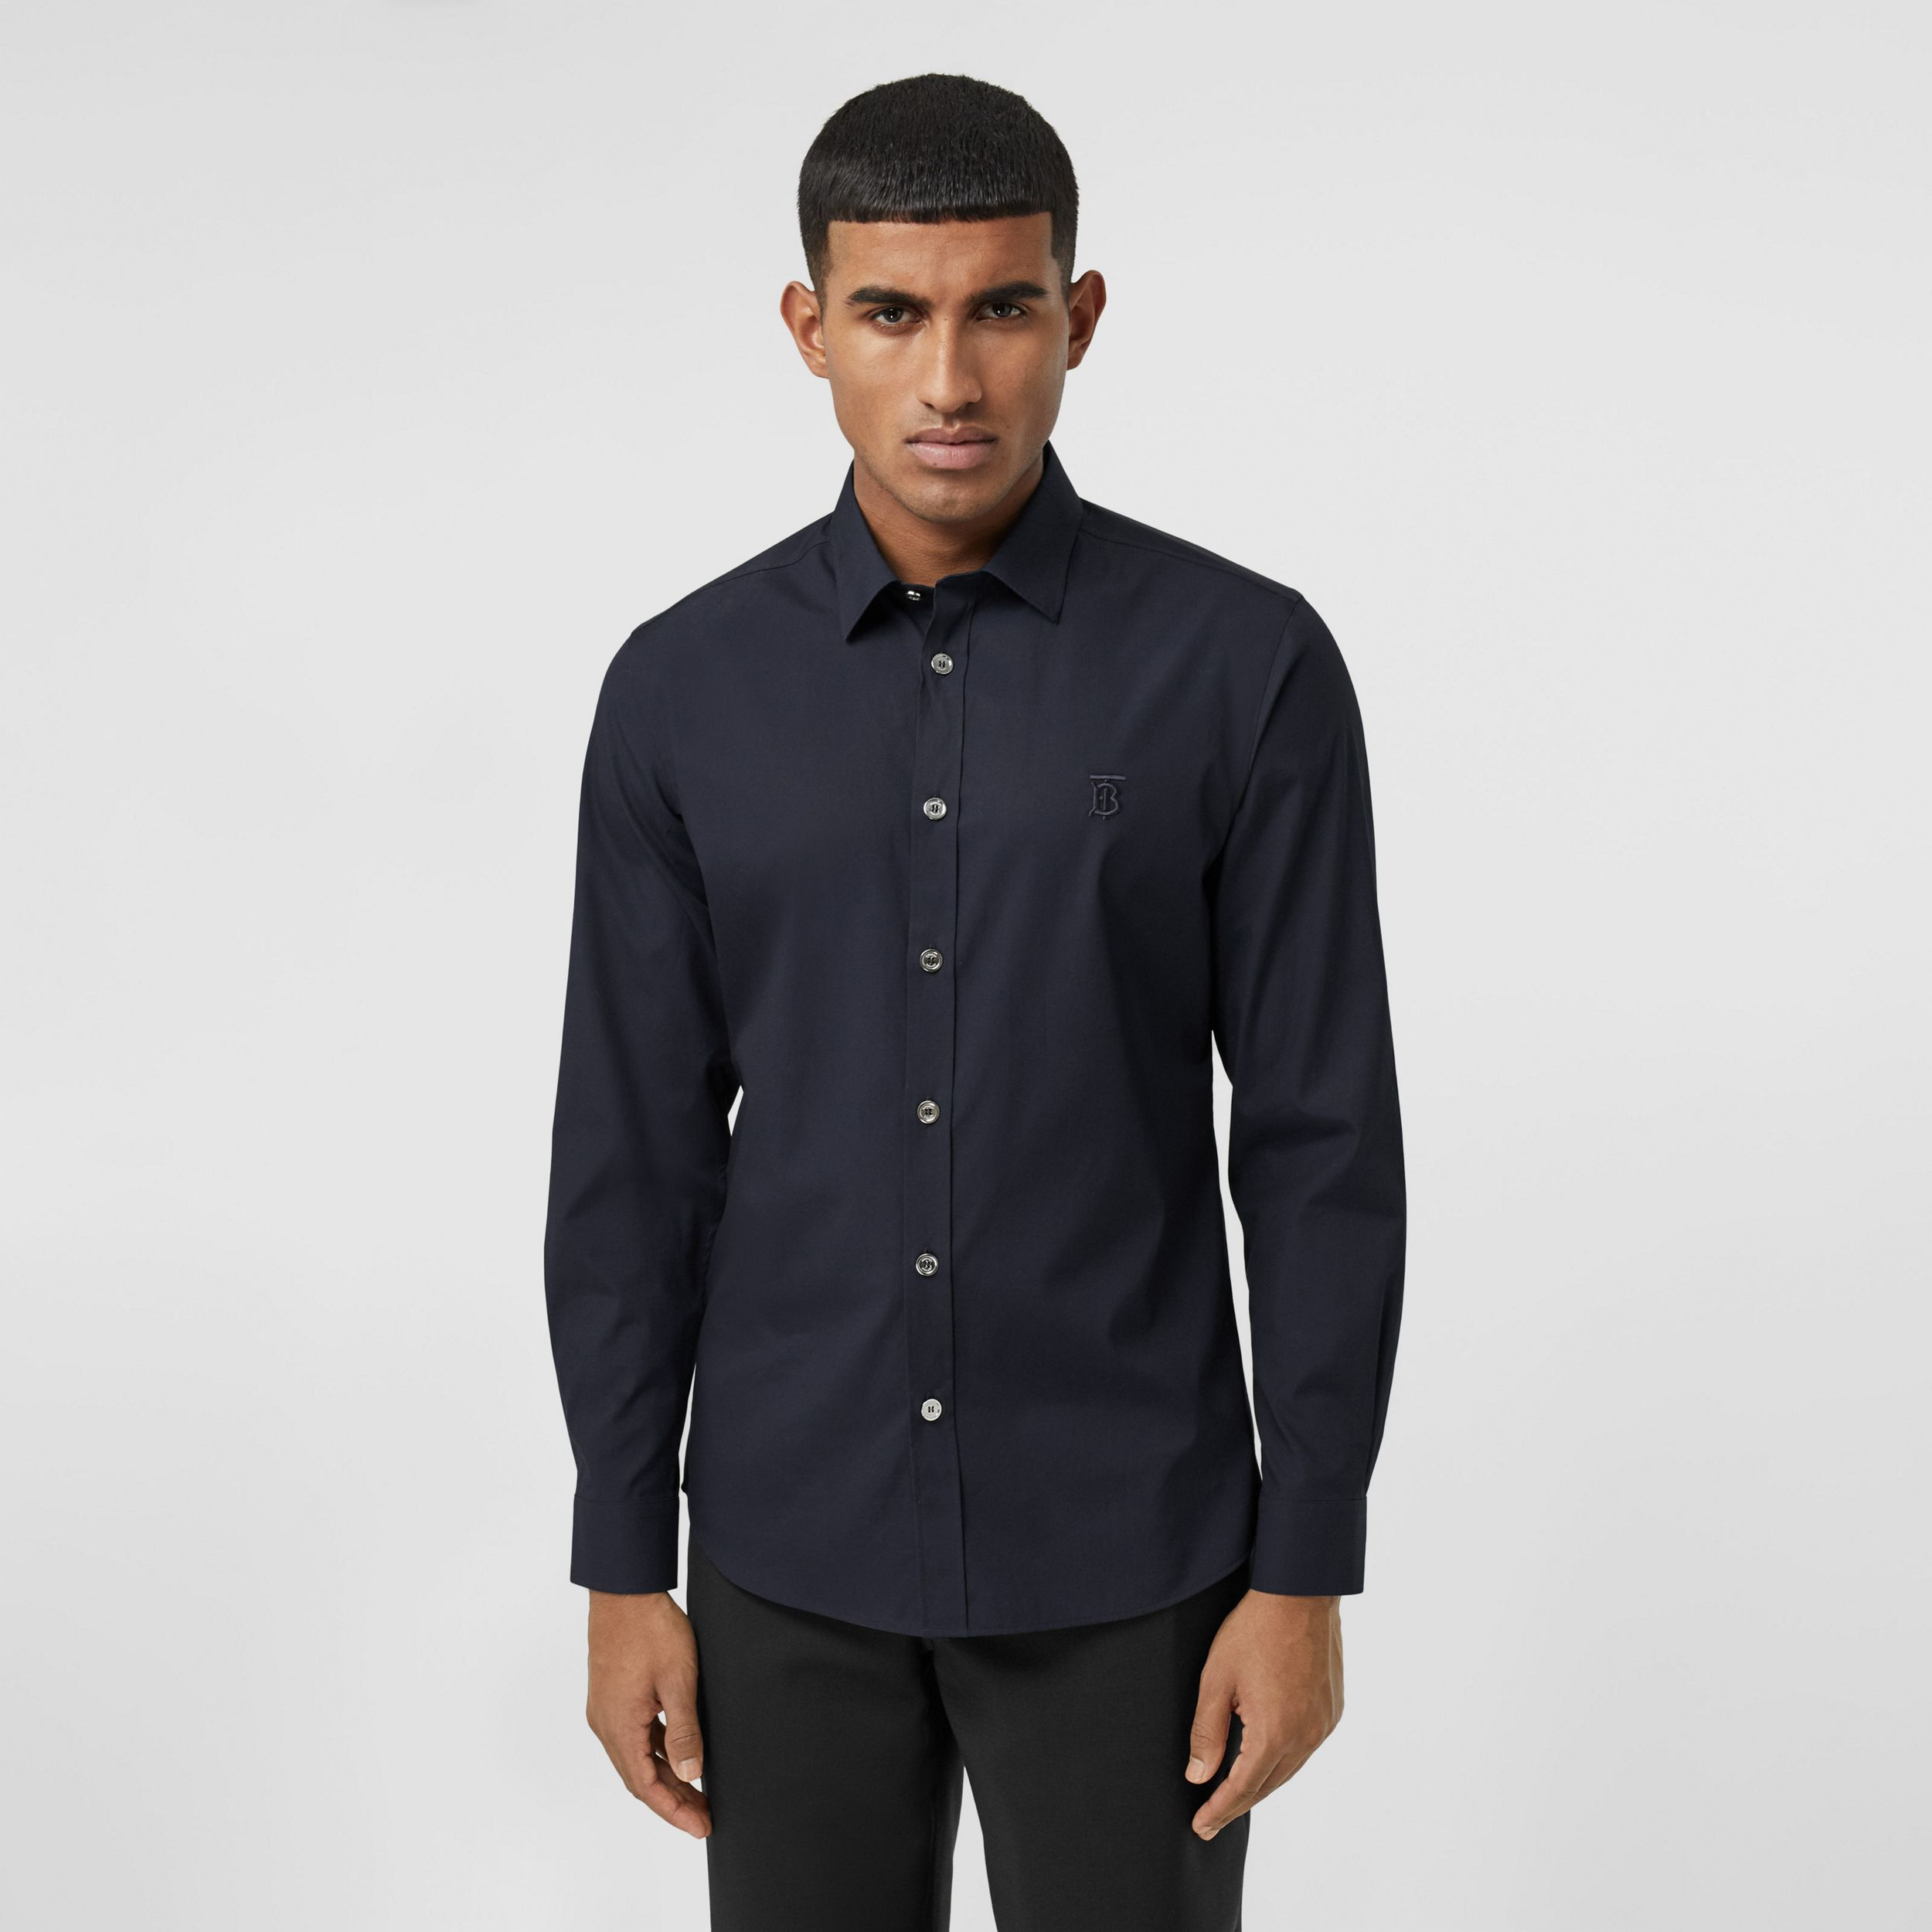 Monogram Motif Stretch Cotton Poplin Shirt in Navy - Men | Burberry Australia - 1